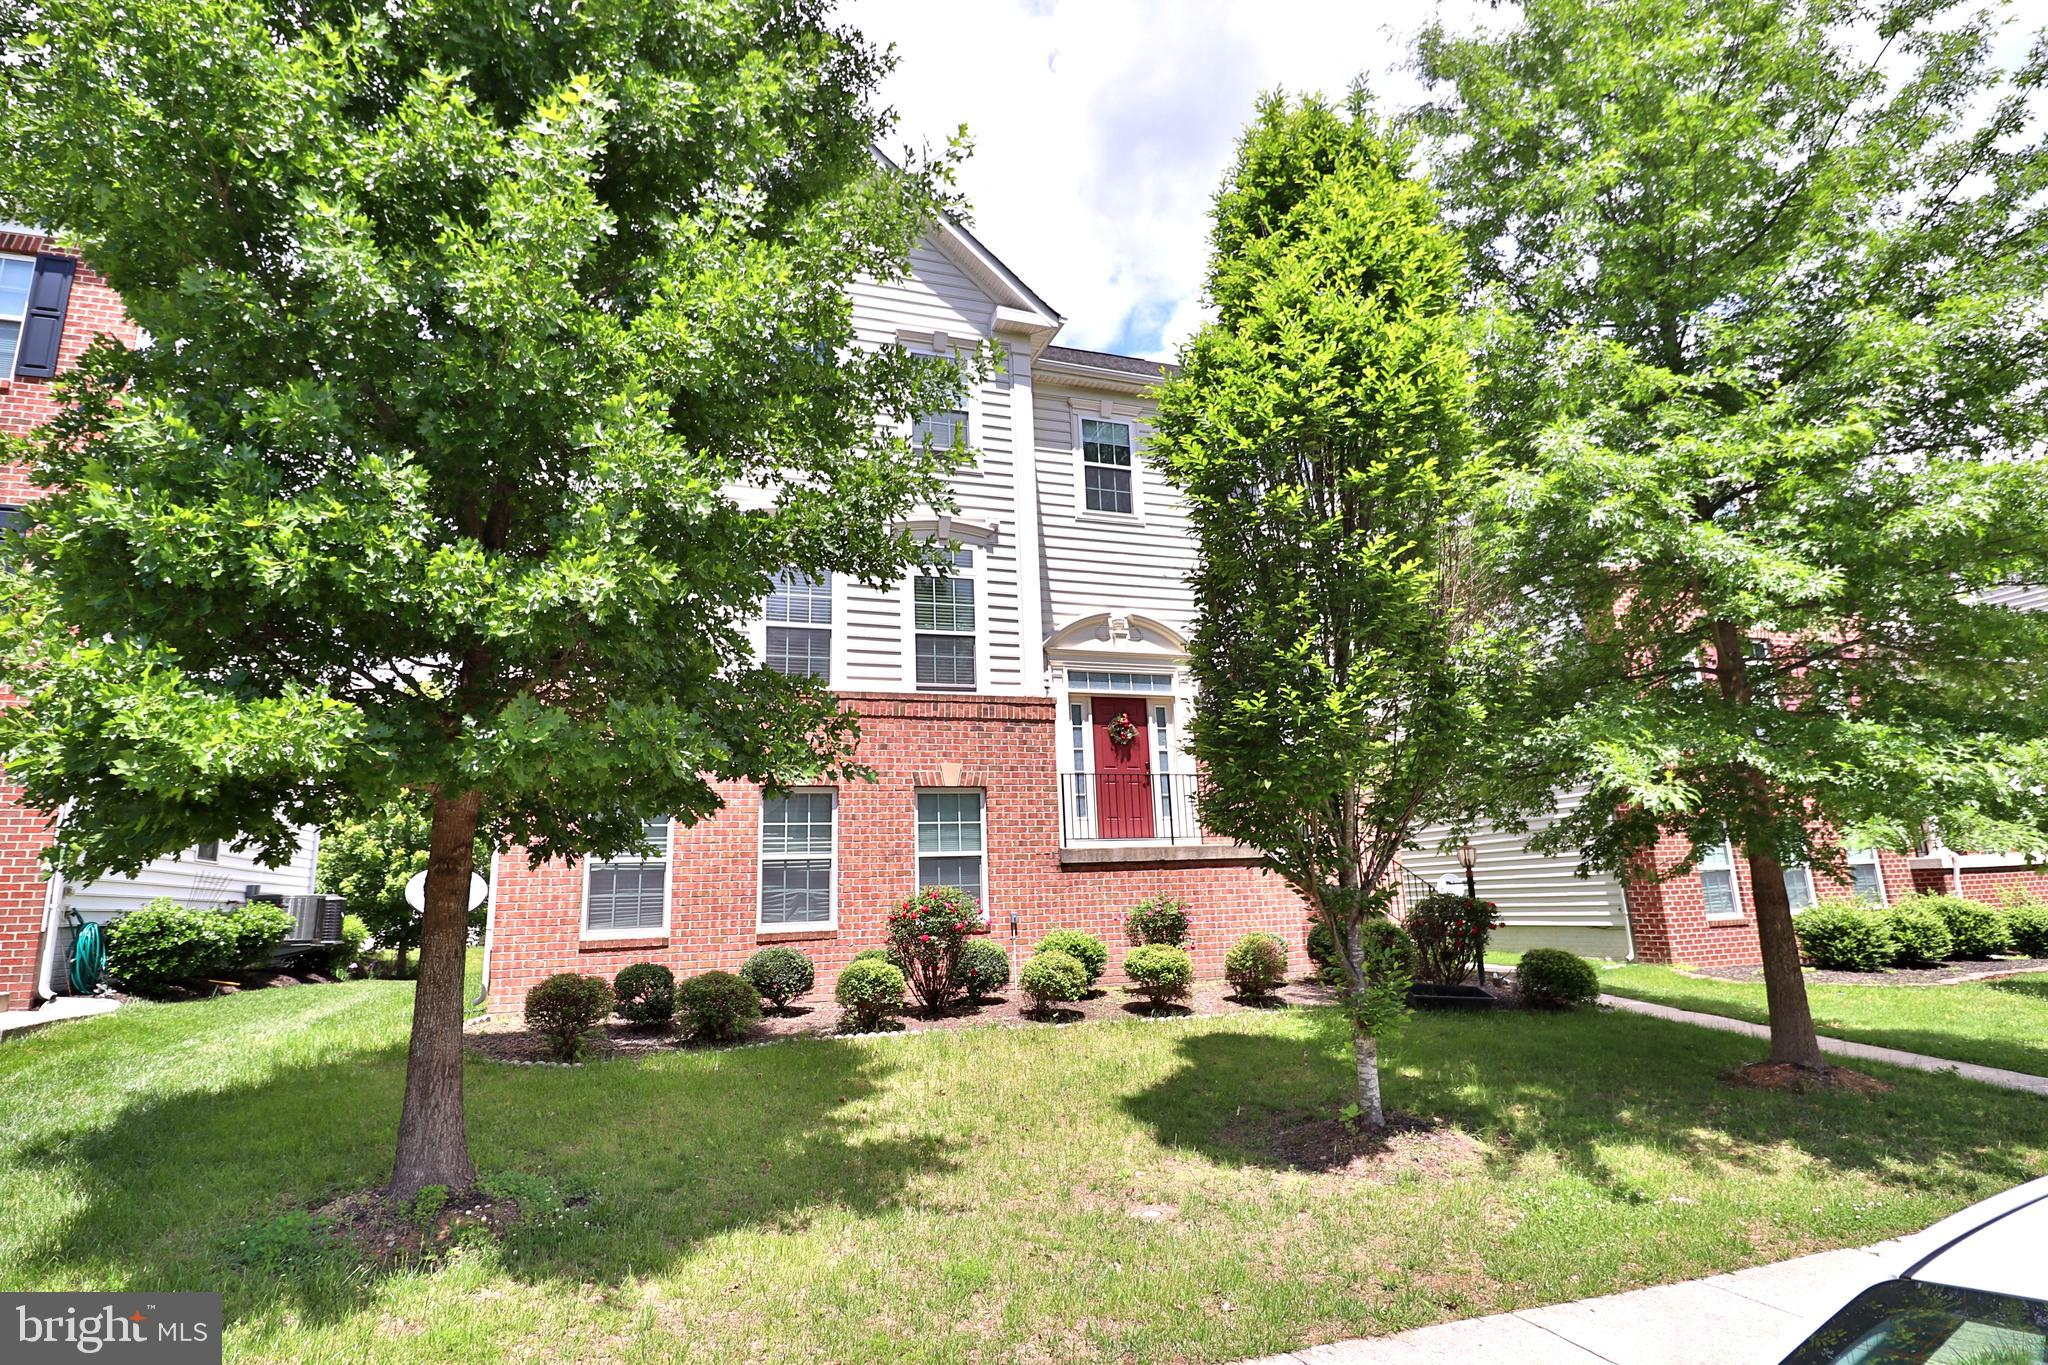 Spacious 5 bedroom and 4.5 bathroom Colonial. Hardwood floor on the main level, Gourmet Kitchen, Granite counter-top, Back Splash, SS appliances, Second floor laundry,  Trey Ceiling, Master bedroom with walk in closet. Close to Shopping center. A must see home to appreciate the property and its location.